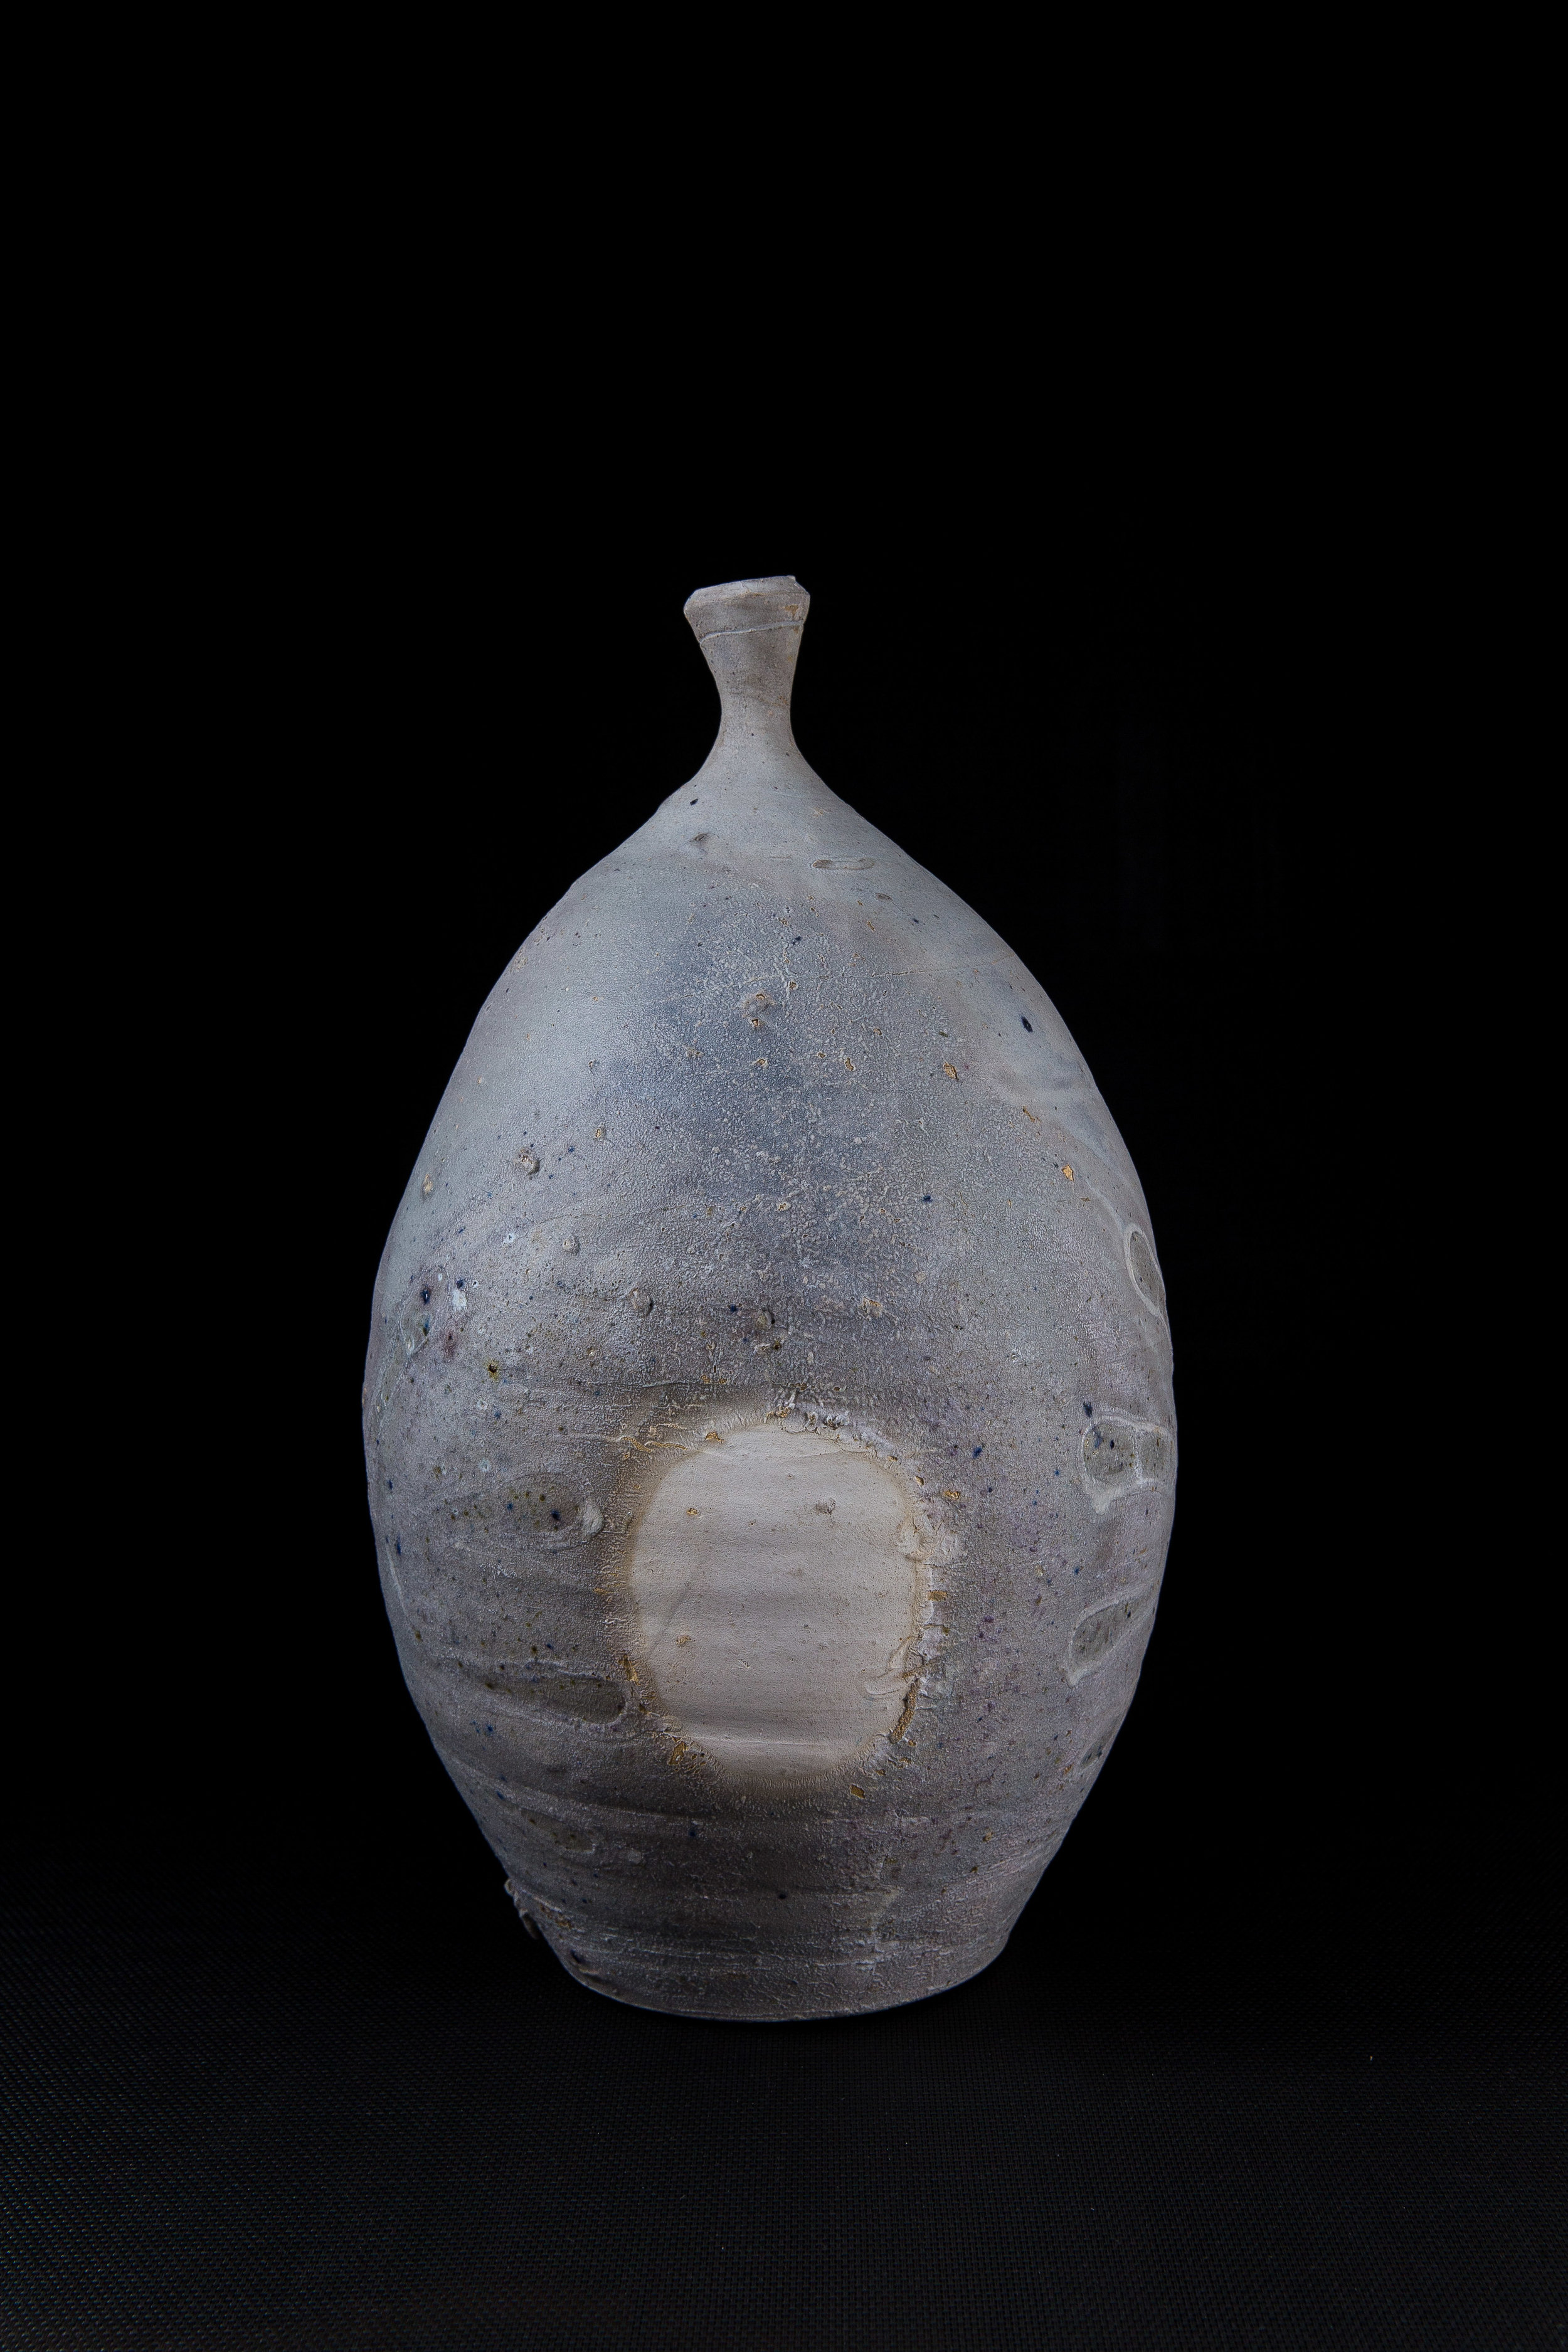 Fall Clay Classes - This mixed levels class will offer wheel throwing instruction for beginning to advanced students. The class will meet on Tuesday evenings from 6-9pm for 6 weeks starting in september and run through November 1st. 2018. $150 to register, class includes 1 #25 bag of clay, glazes, bisque firing and glaze firing.5 students maximum